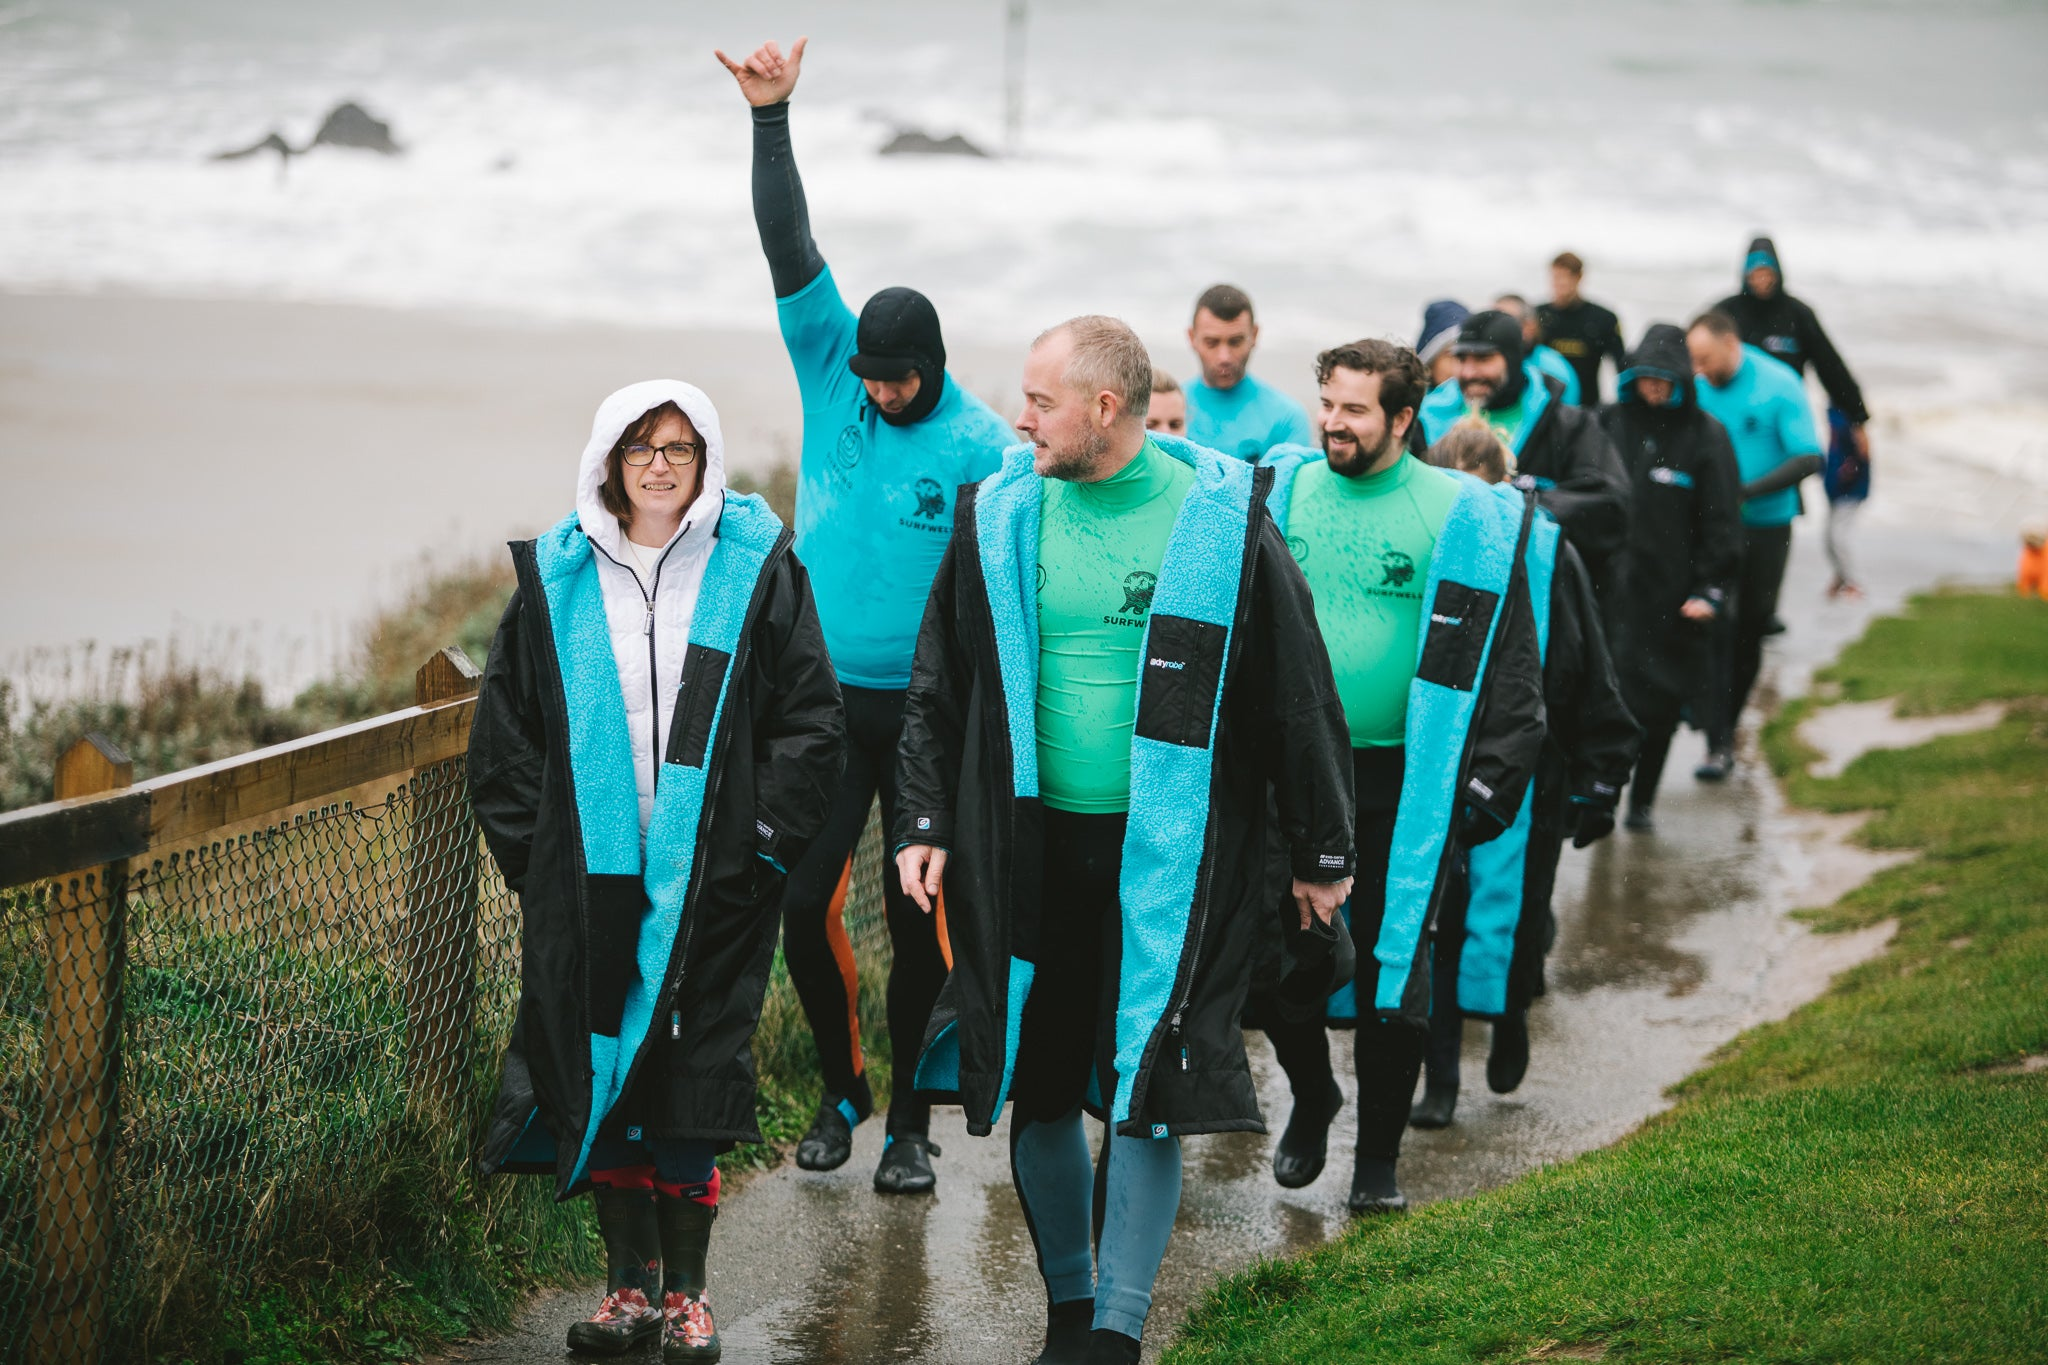 Surfwell surf therapy participants walking from the beach wearing black and blue dryrobes